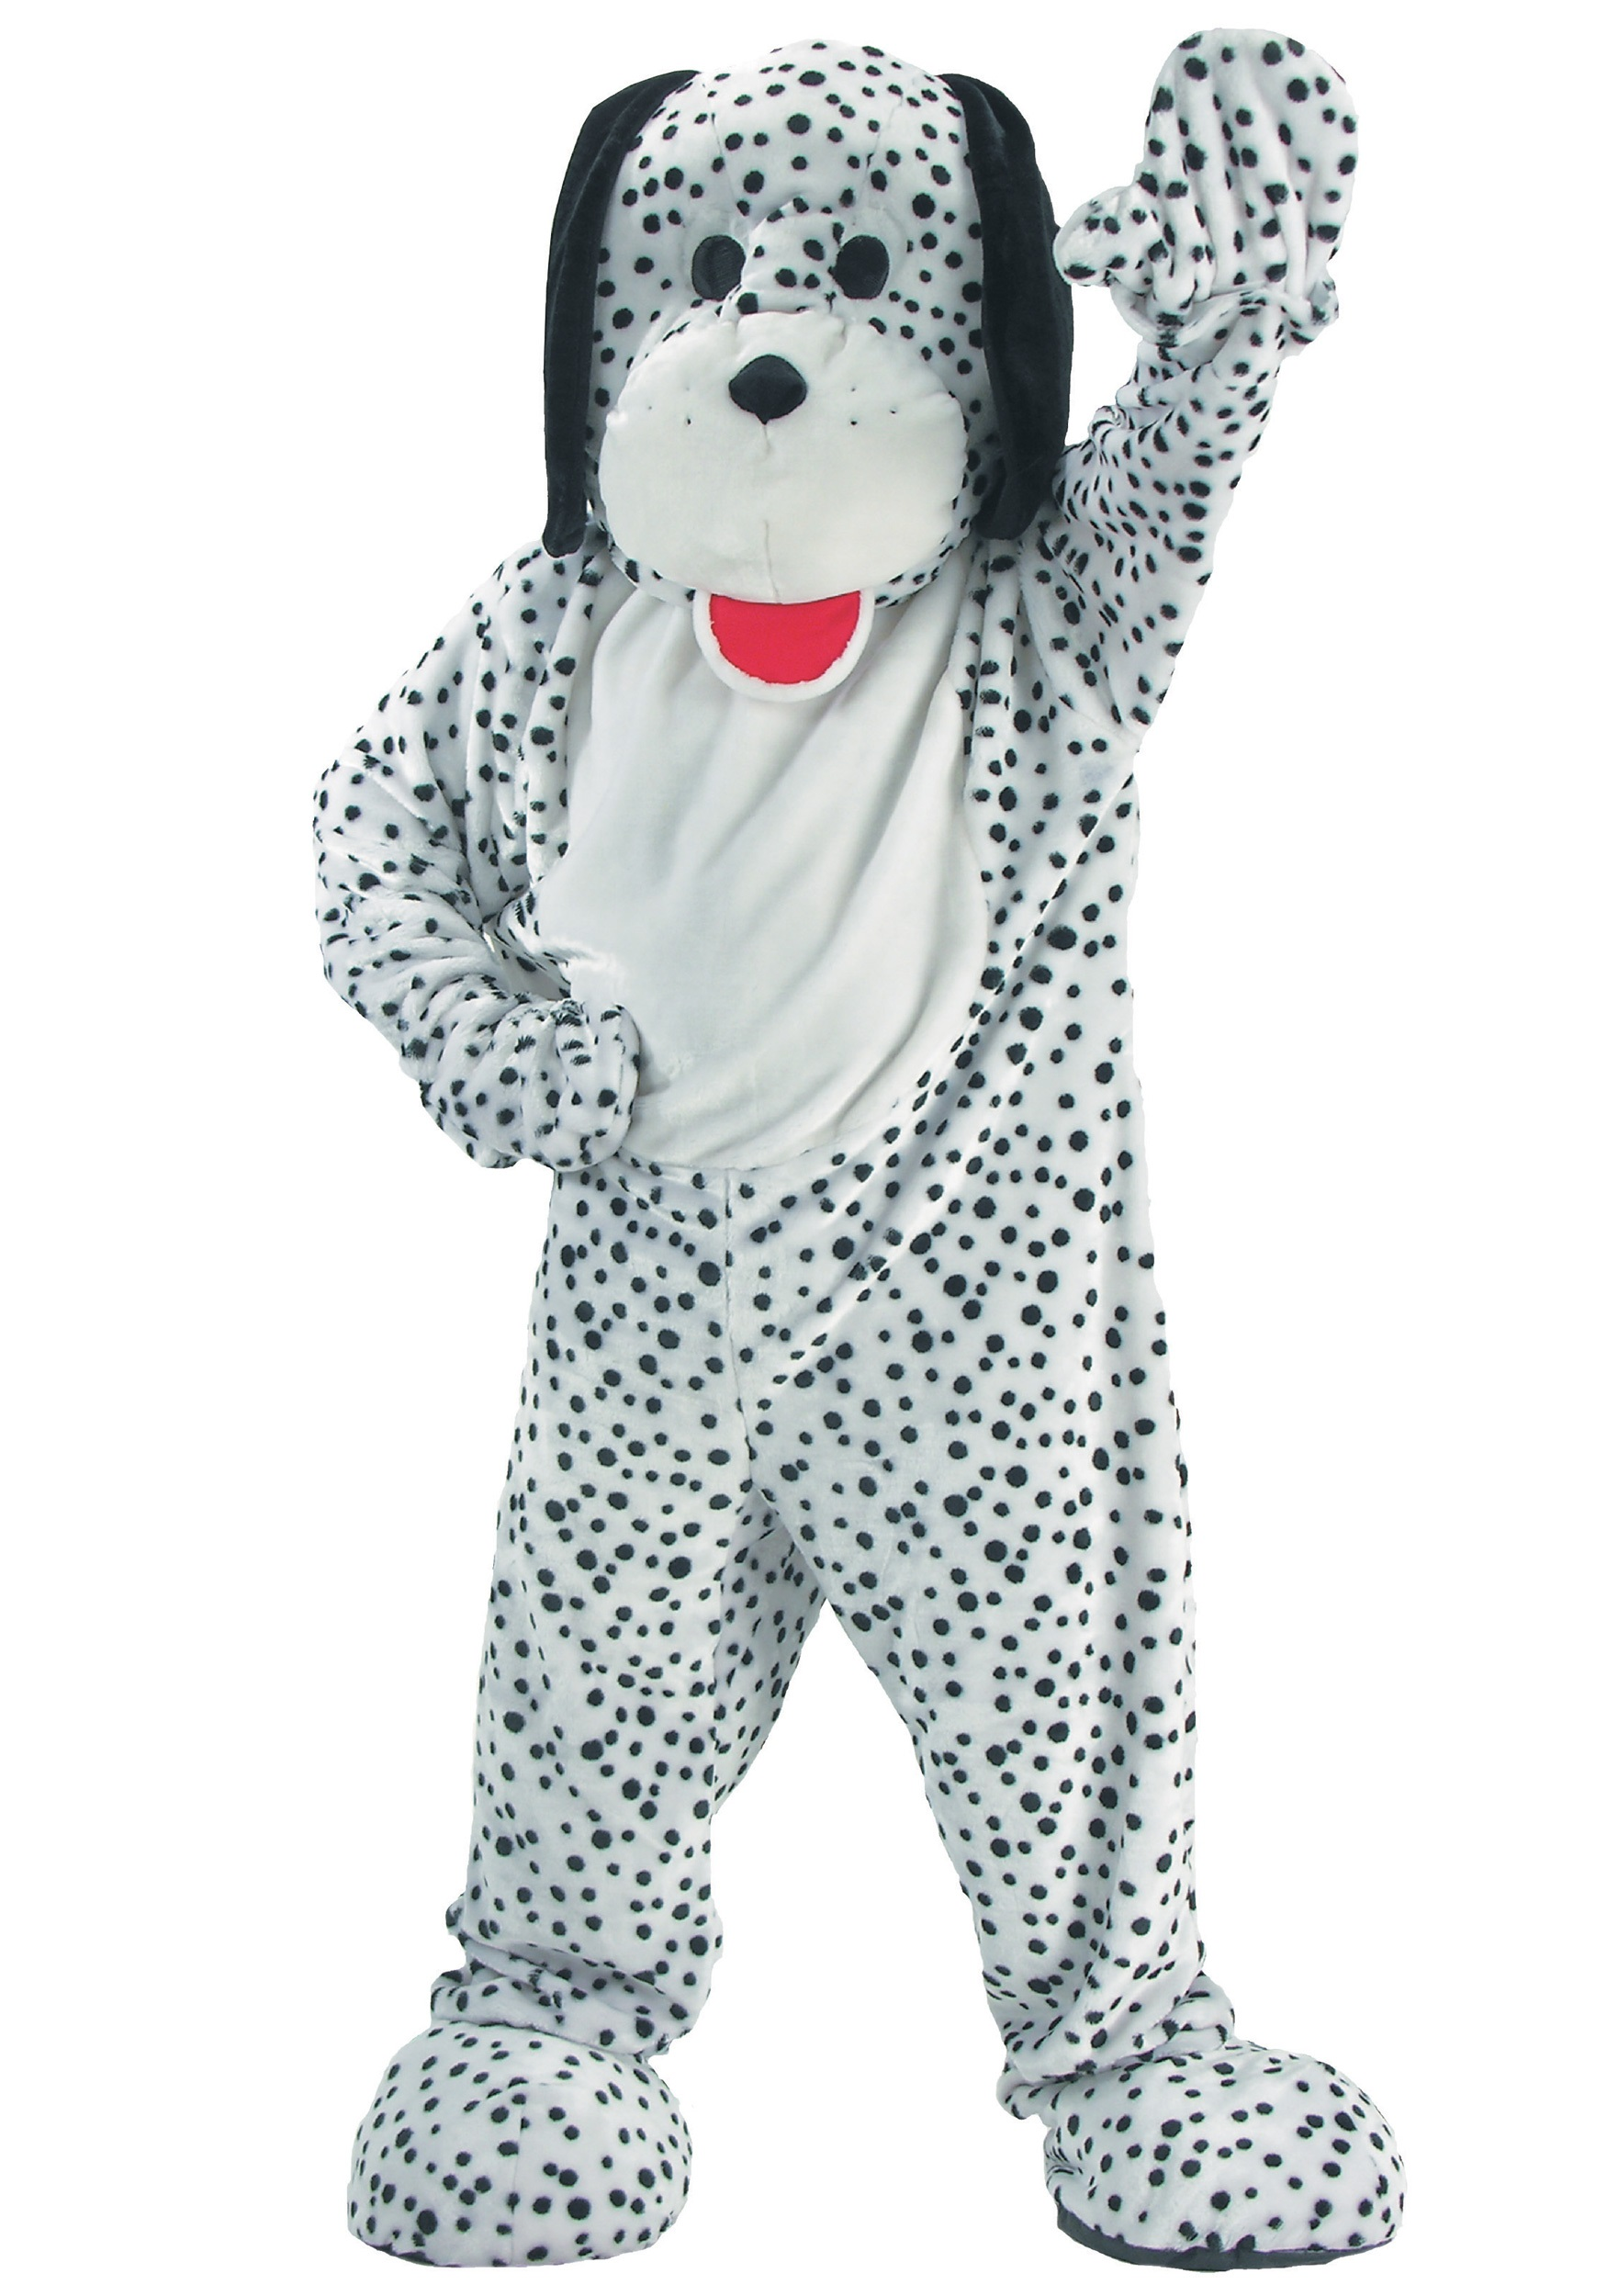 sc 1 st  Halloween Costumes : dalmation puppy costume  - Germanpascual.Com